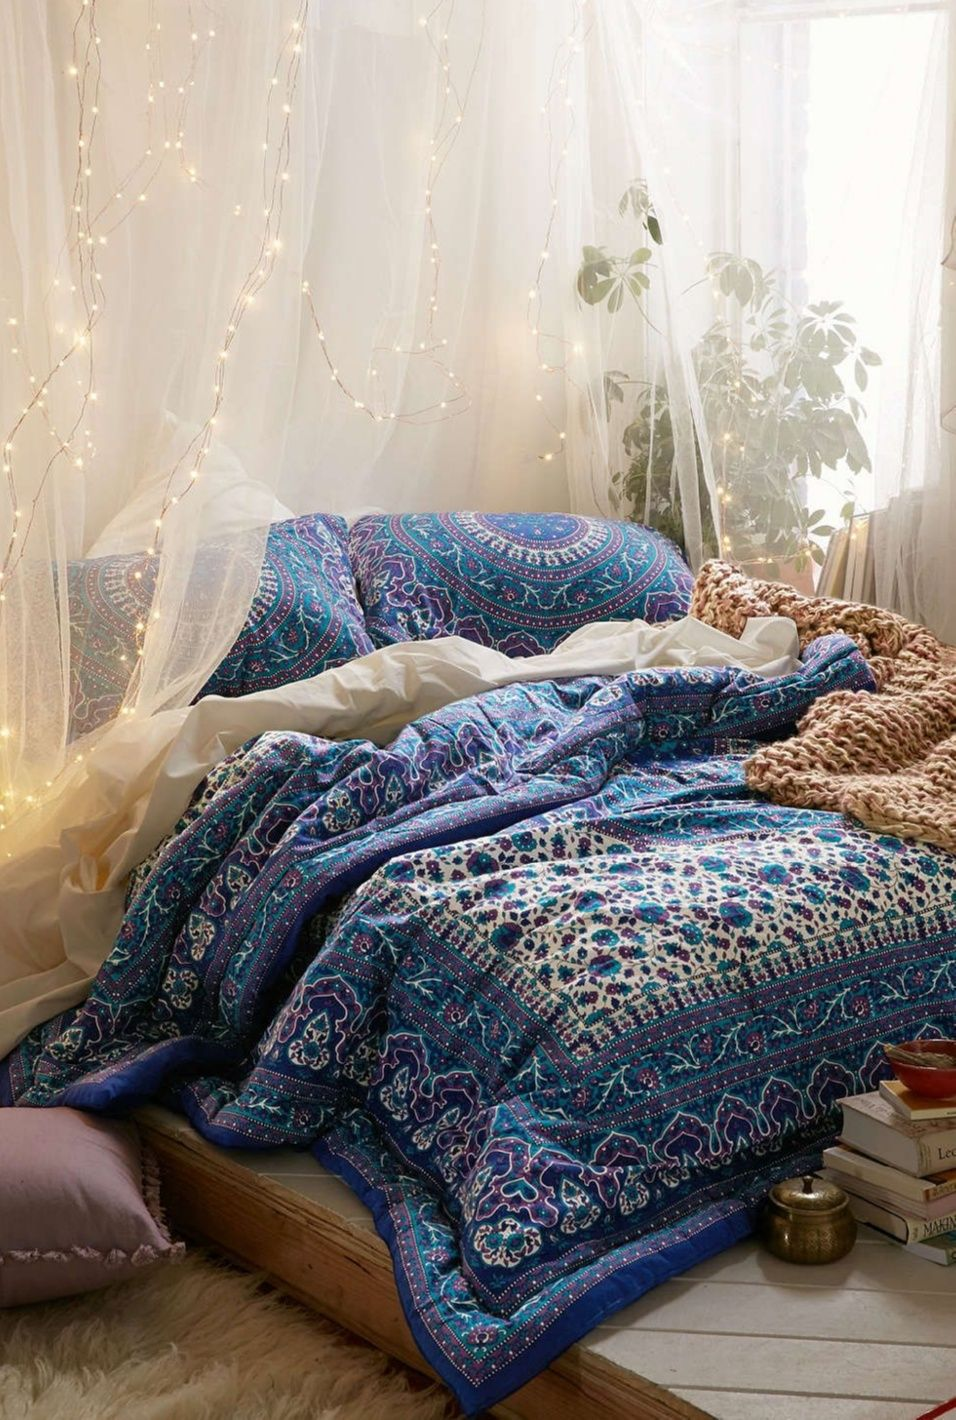 Design Your Own Dorm Room: Comfy Bed Pictures. Dorm Room Ideas: Create Your Own Bed